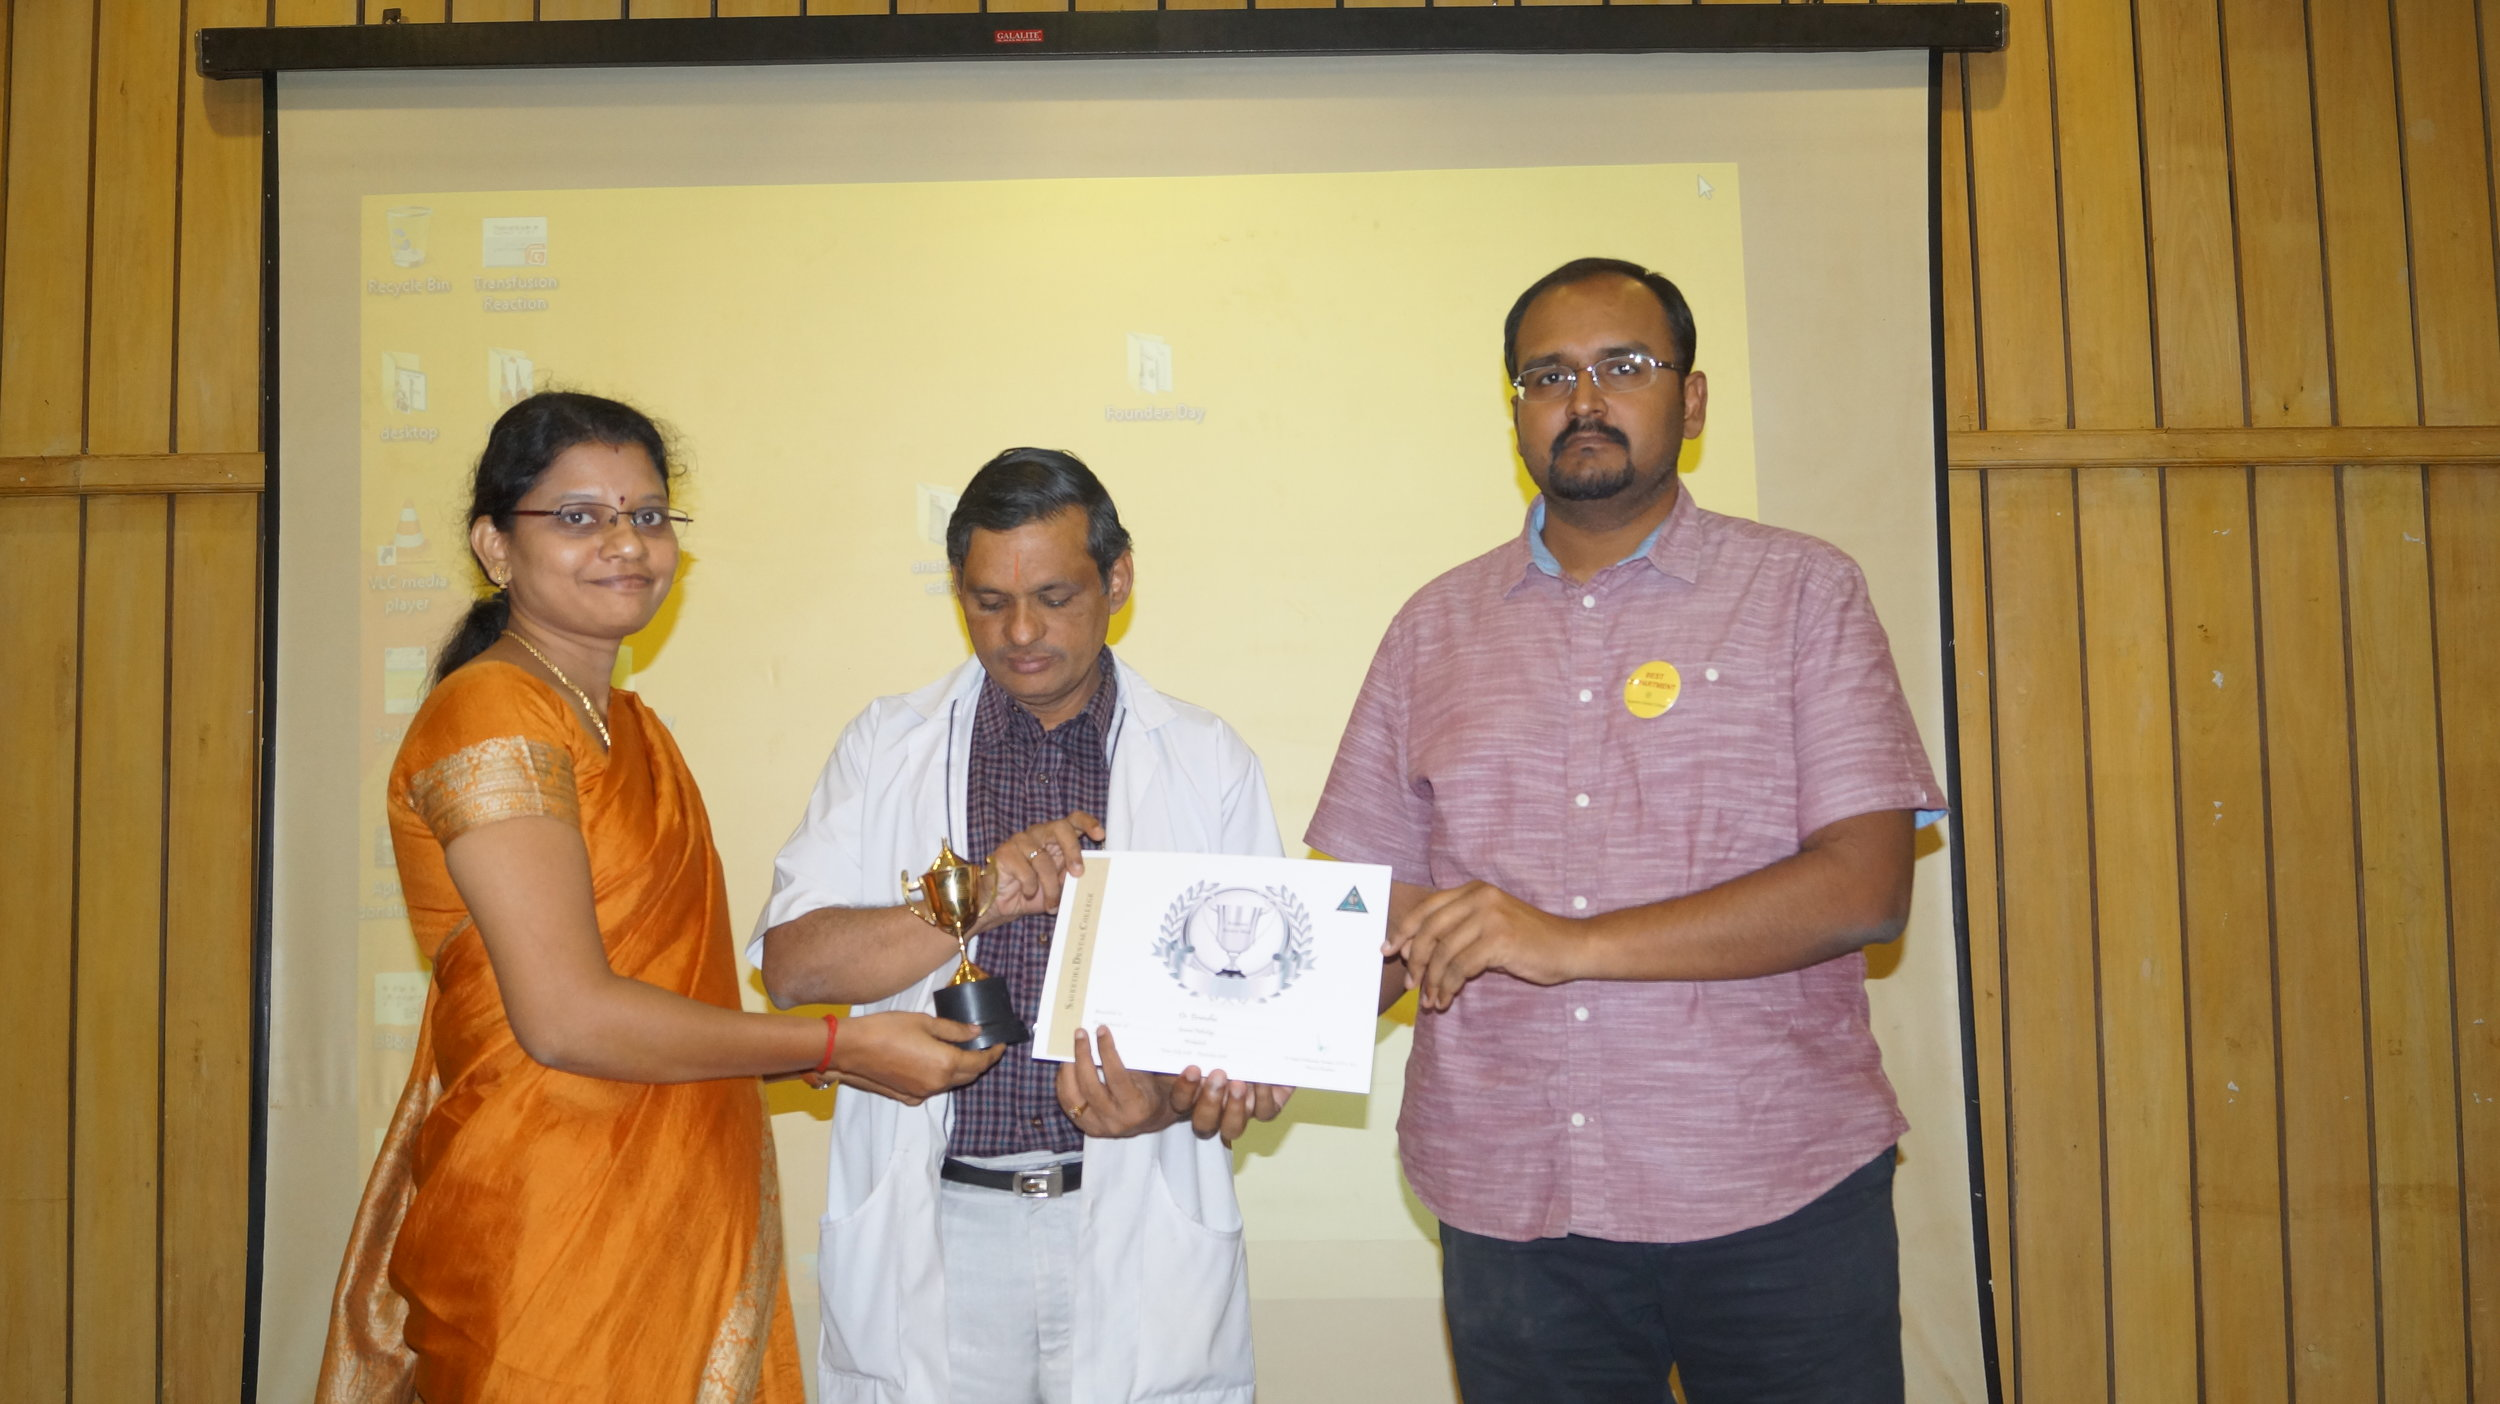 Dr.M.P.Brundha is getting the Workaholic award from the Director of academics and the Dean of Saveetha Dental college.